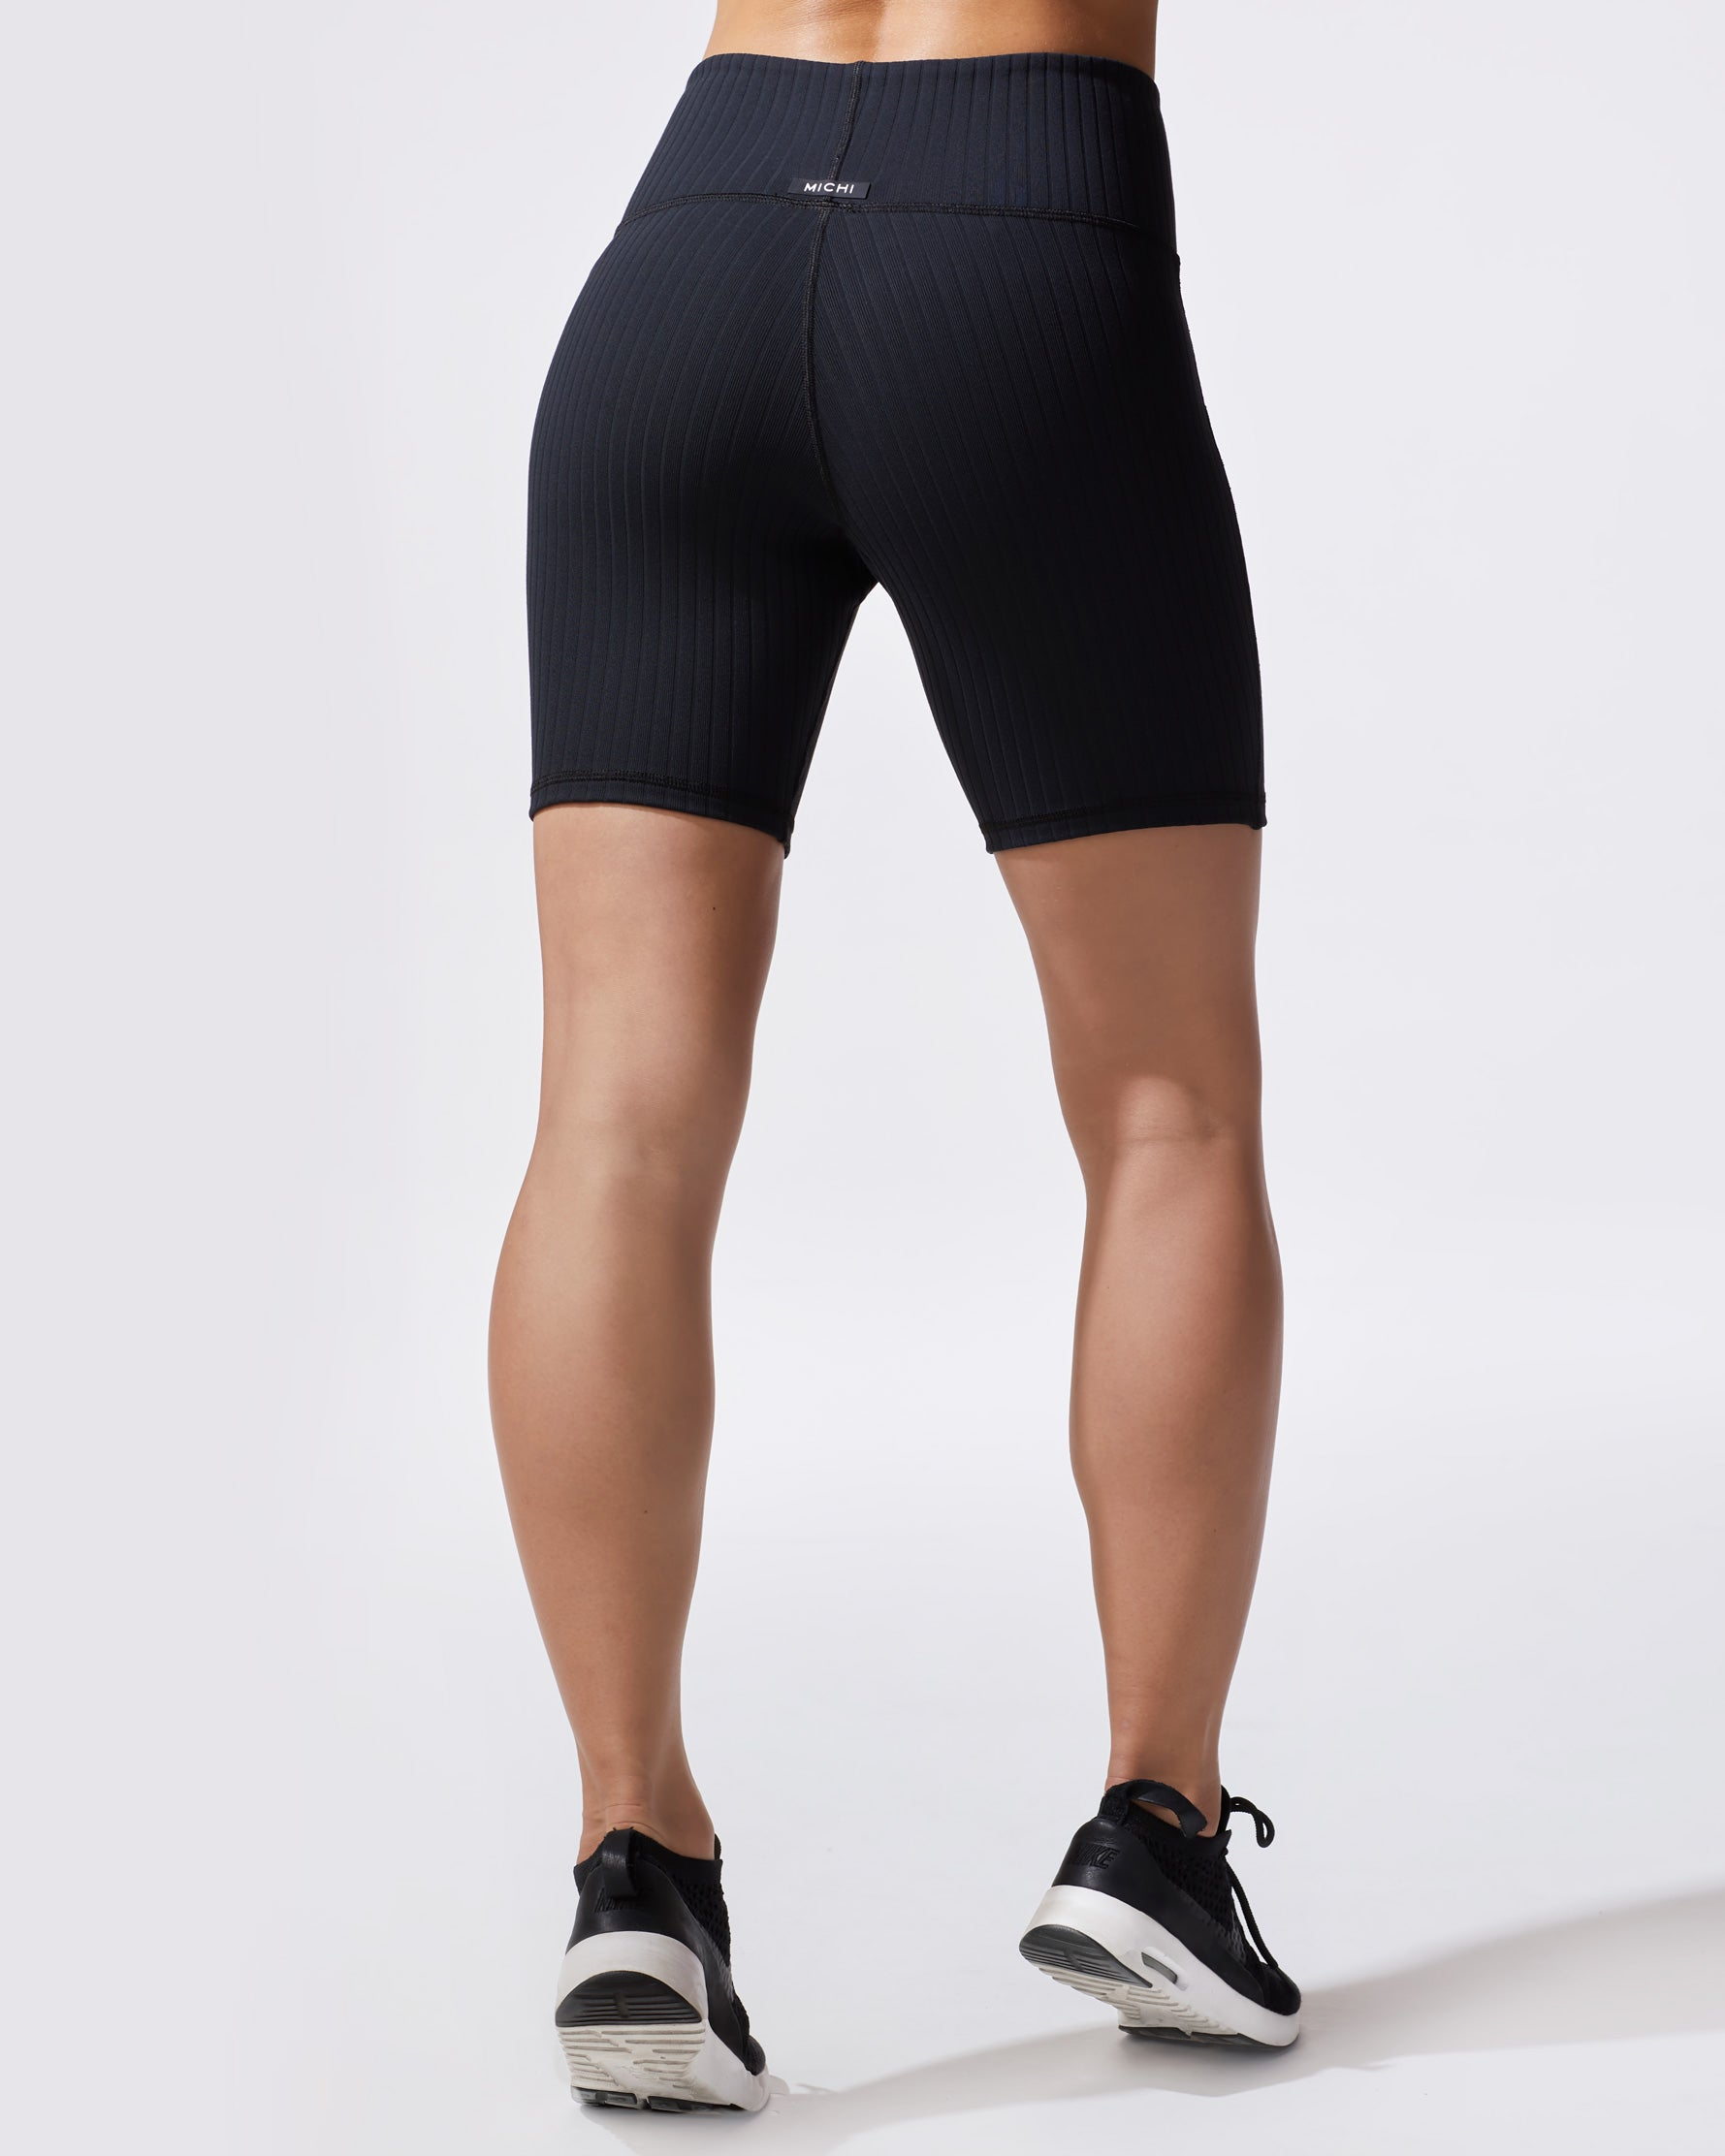 reflex-bike-short-black